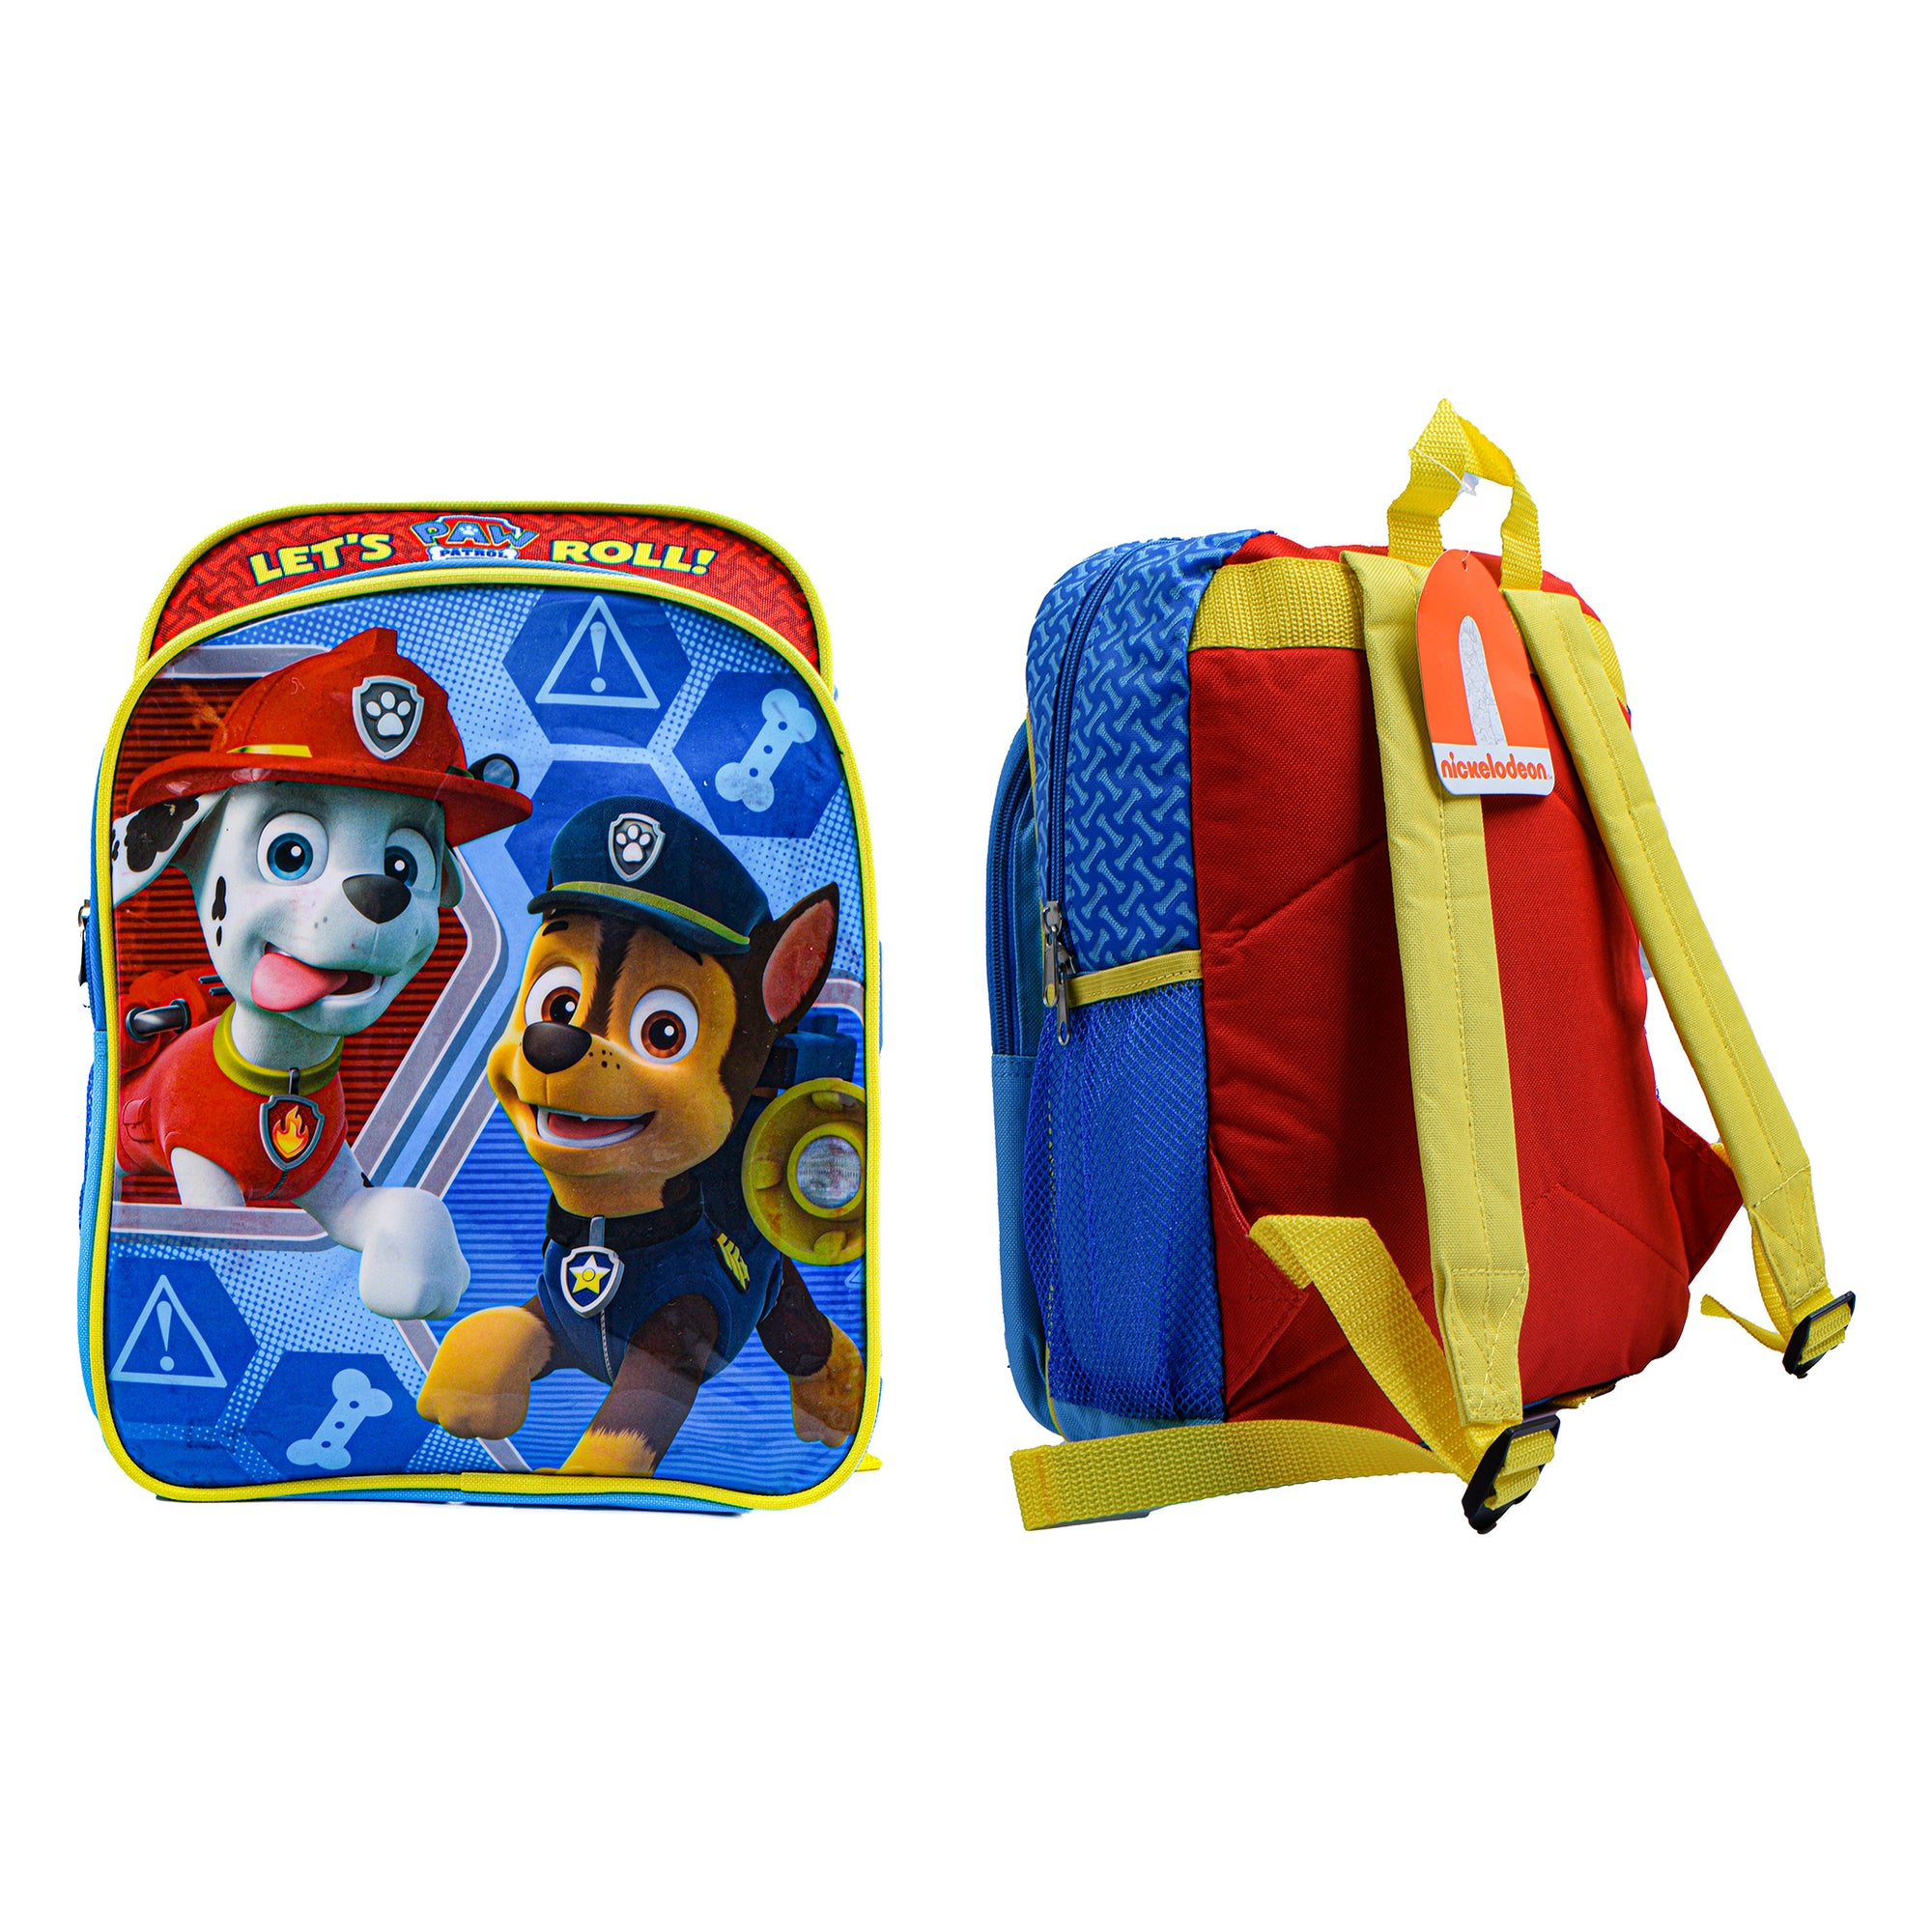 Nickelodeon Stylish School Bag For Kids-Paw Petrol-NA12267